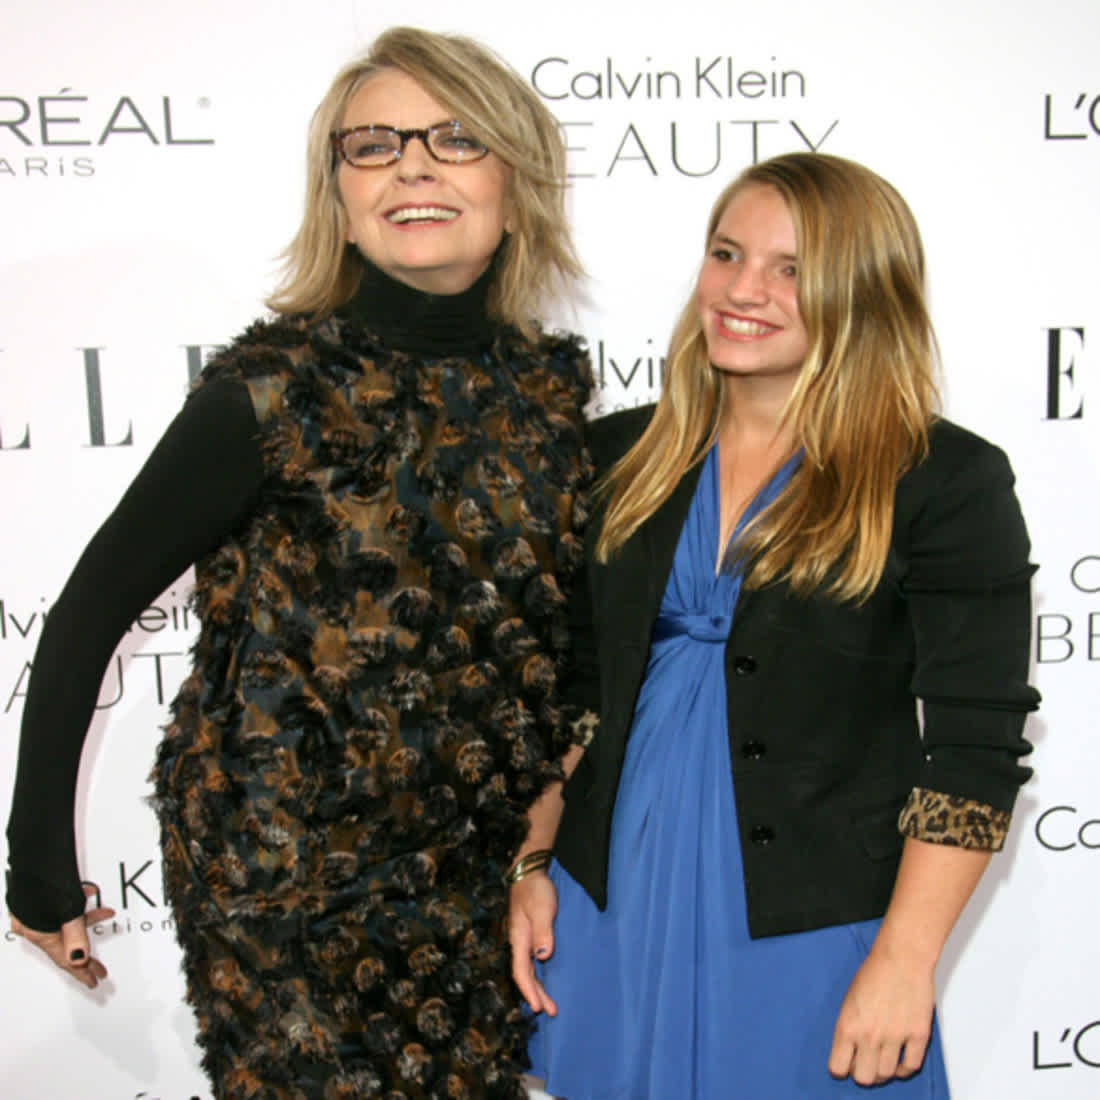 Celeb Moms Who Have Adopted Mom Com Michelle pfeiffer | мишель пфайффер. celeb moms who have adopted mom com